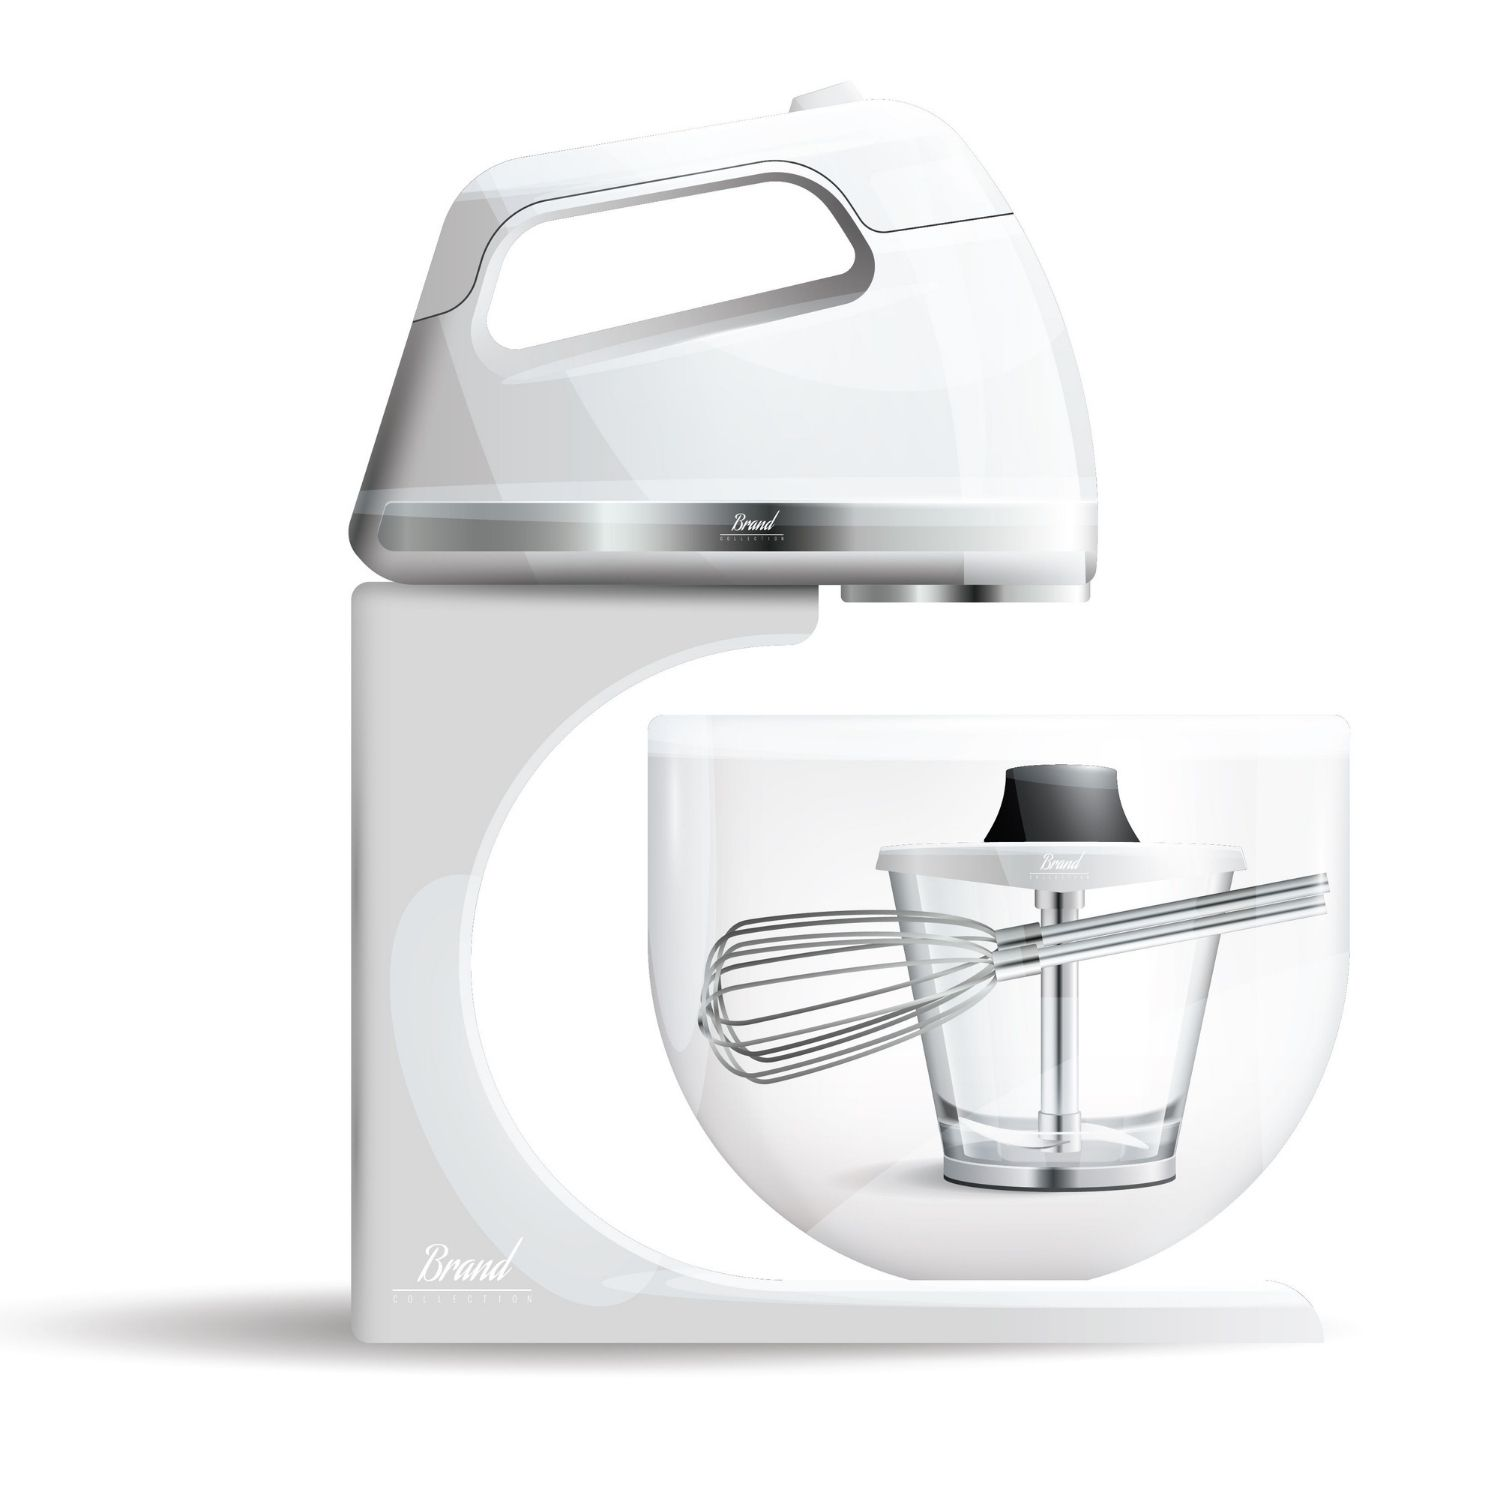 Store Your Food Mixer Attachments in its Bowl